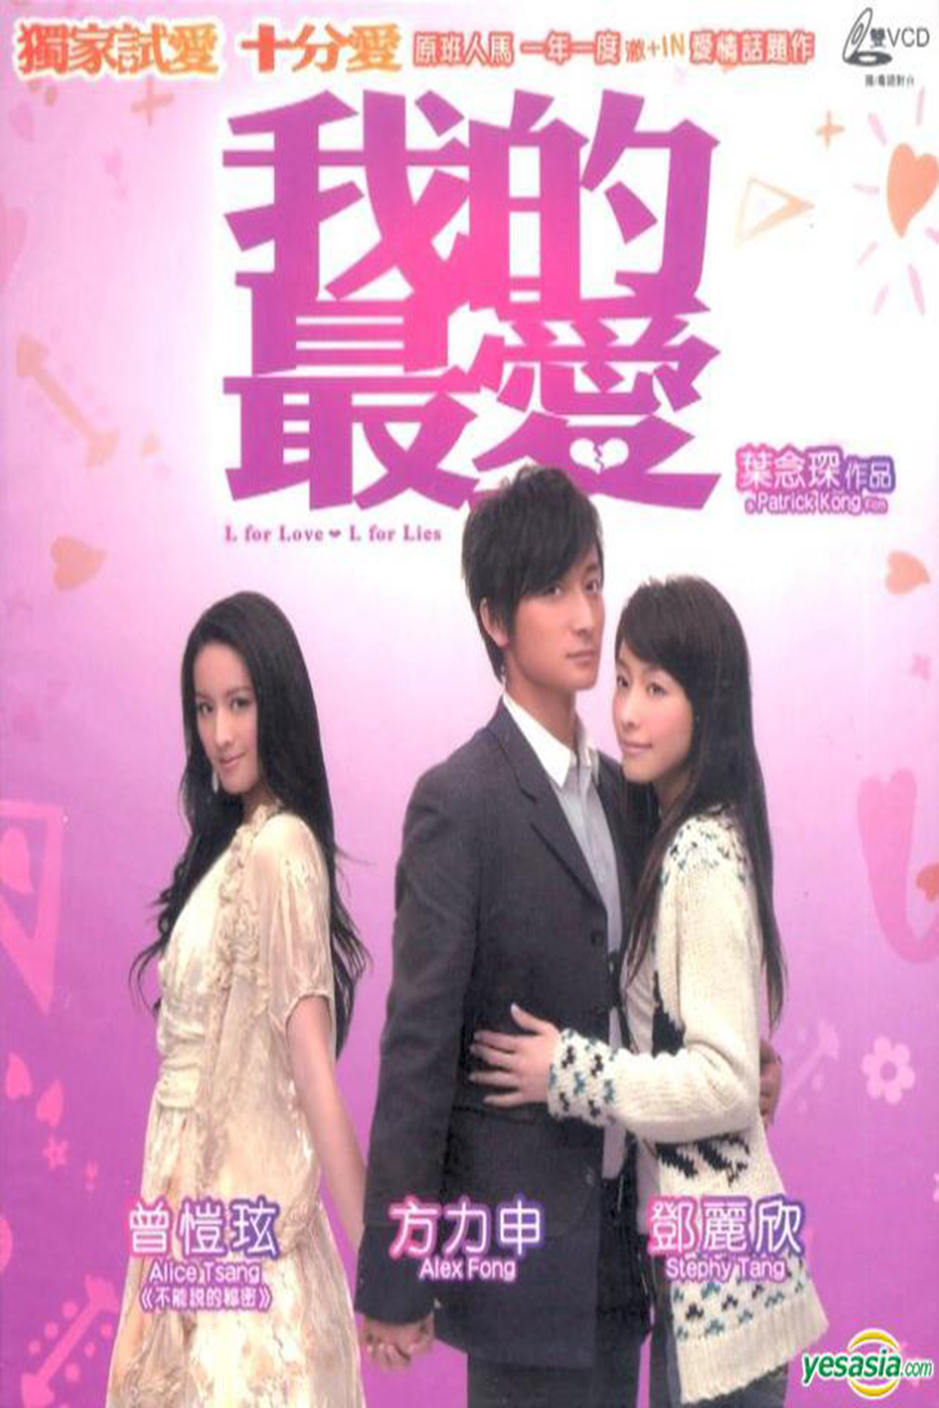 L for Love L for Lies [2008 Hong Kong Movie] Romance